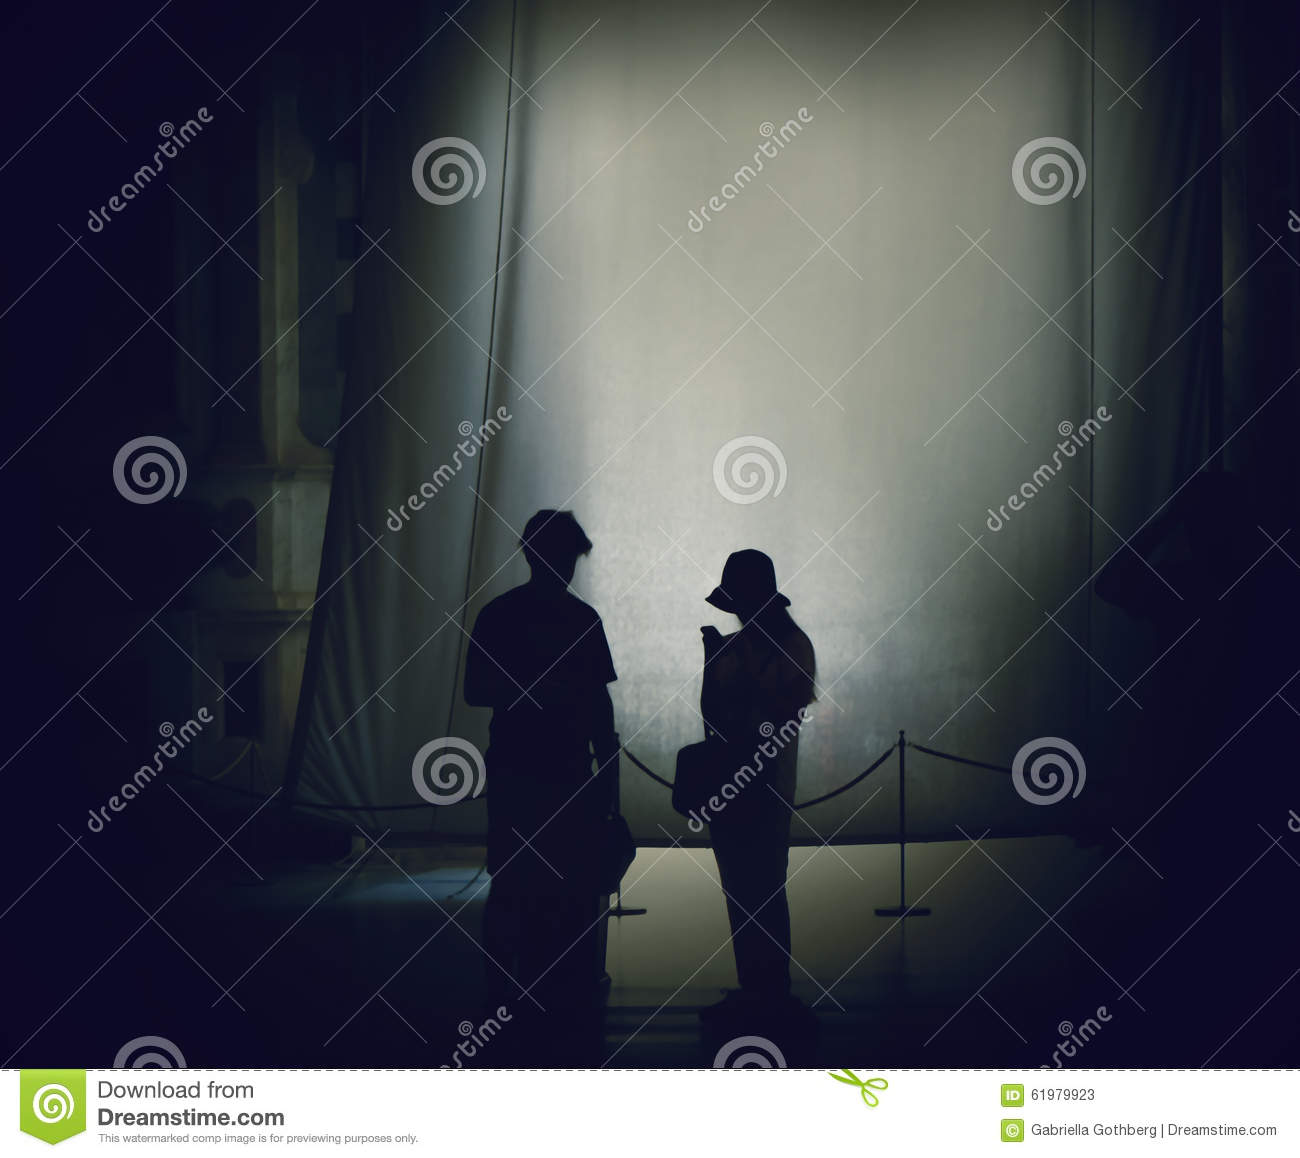 Silhouettes of people backlit in the great cathedral of Pisa.